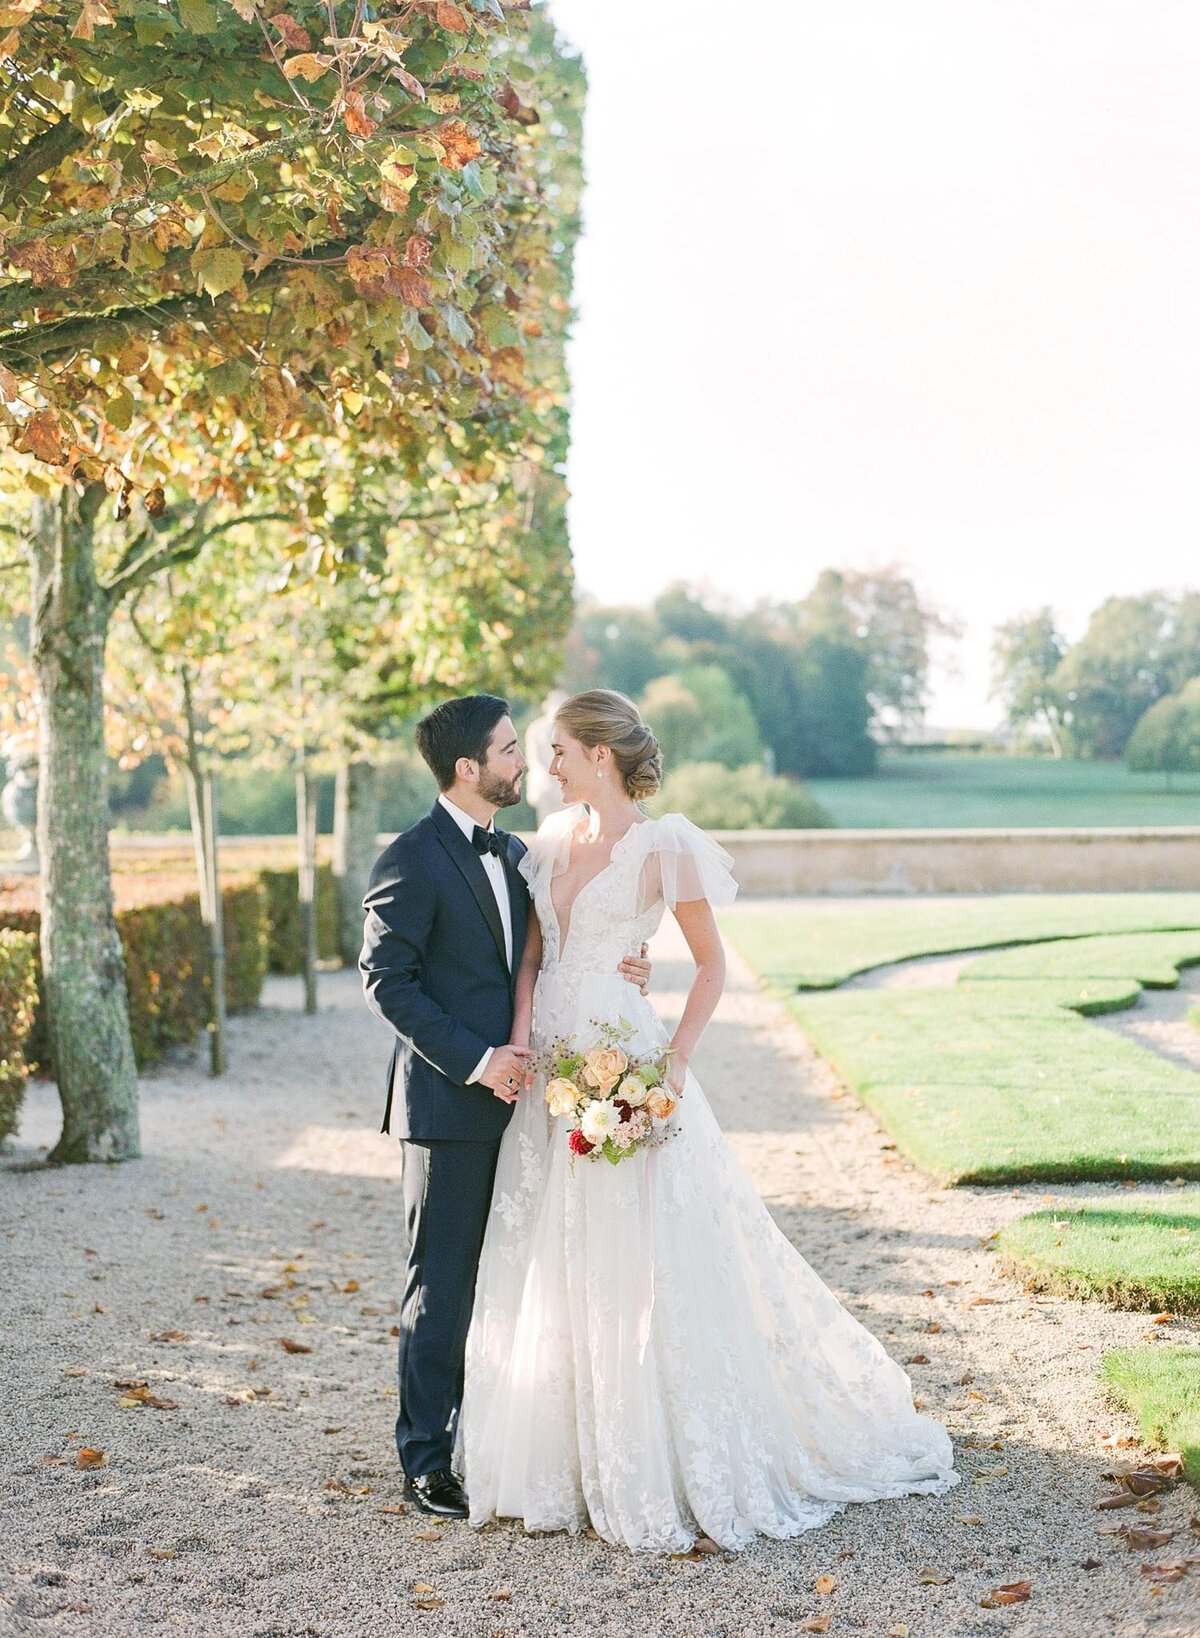 Molly-Carr-Photography-Paris-Wedding-Photographer-19